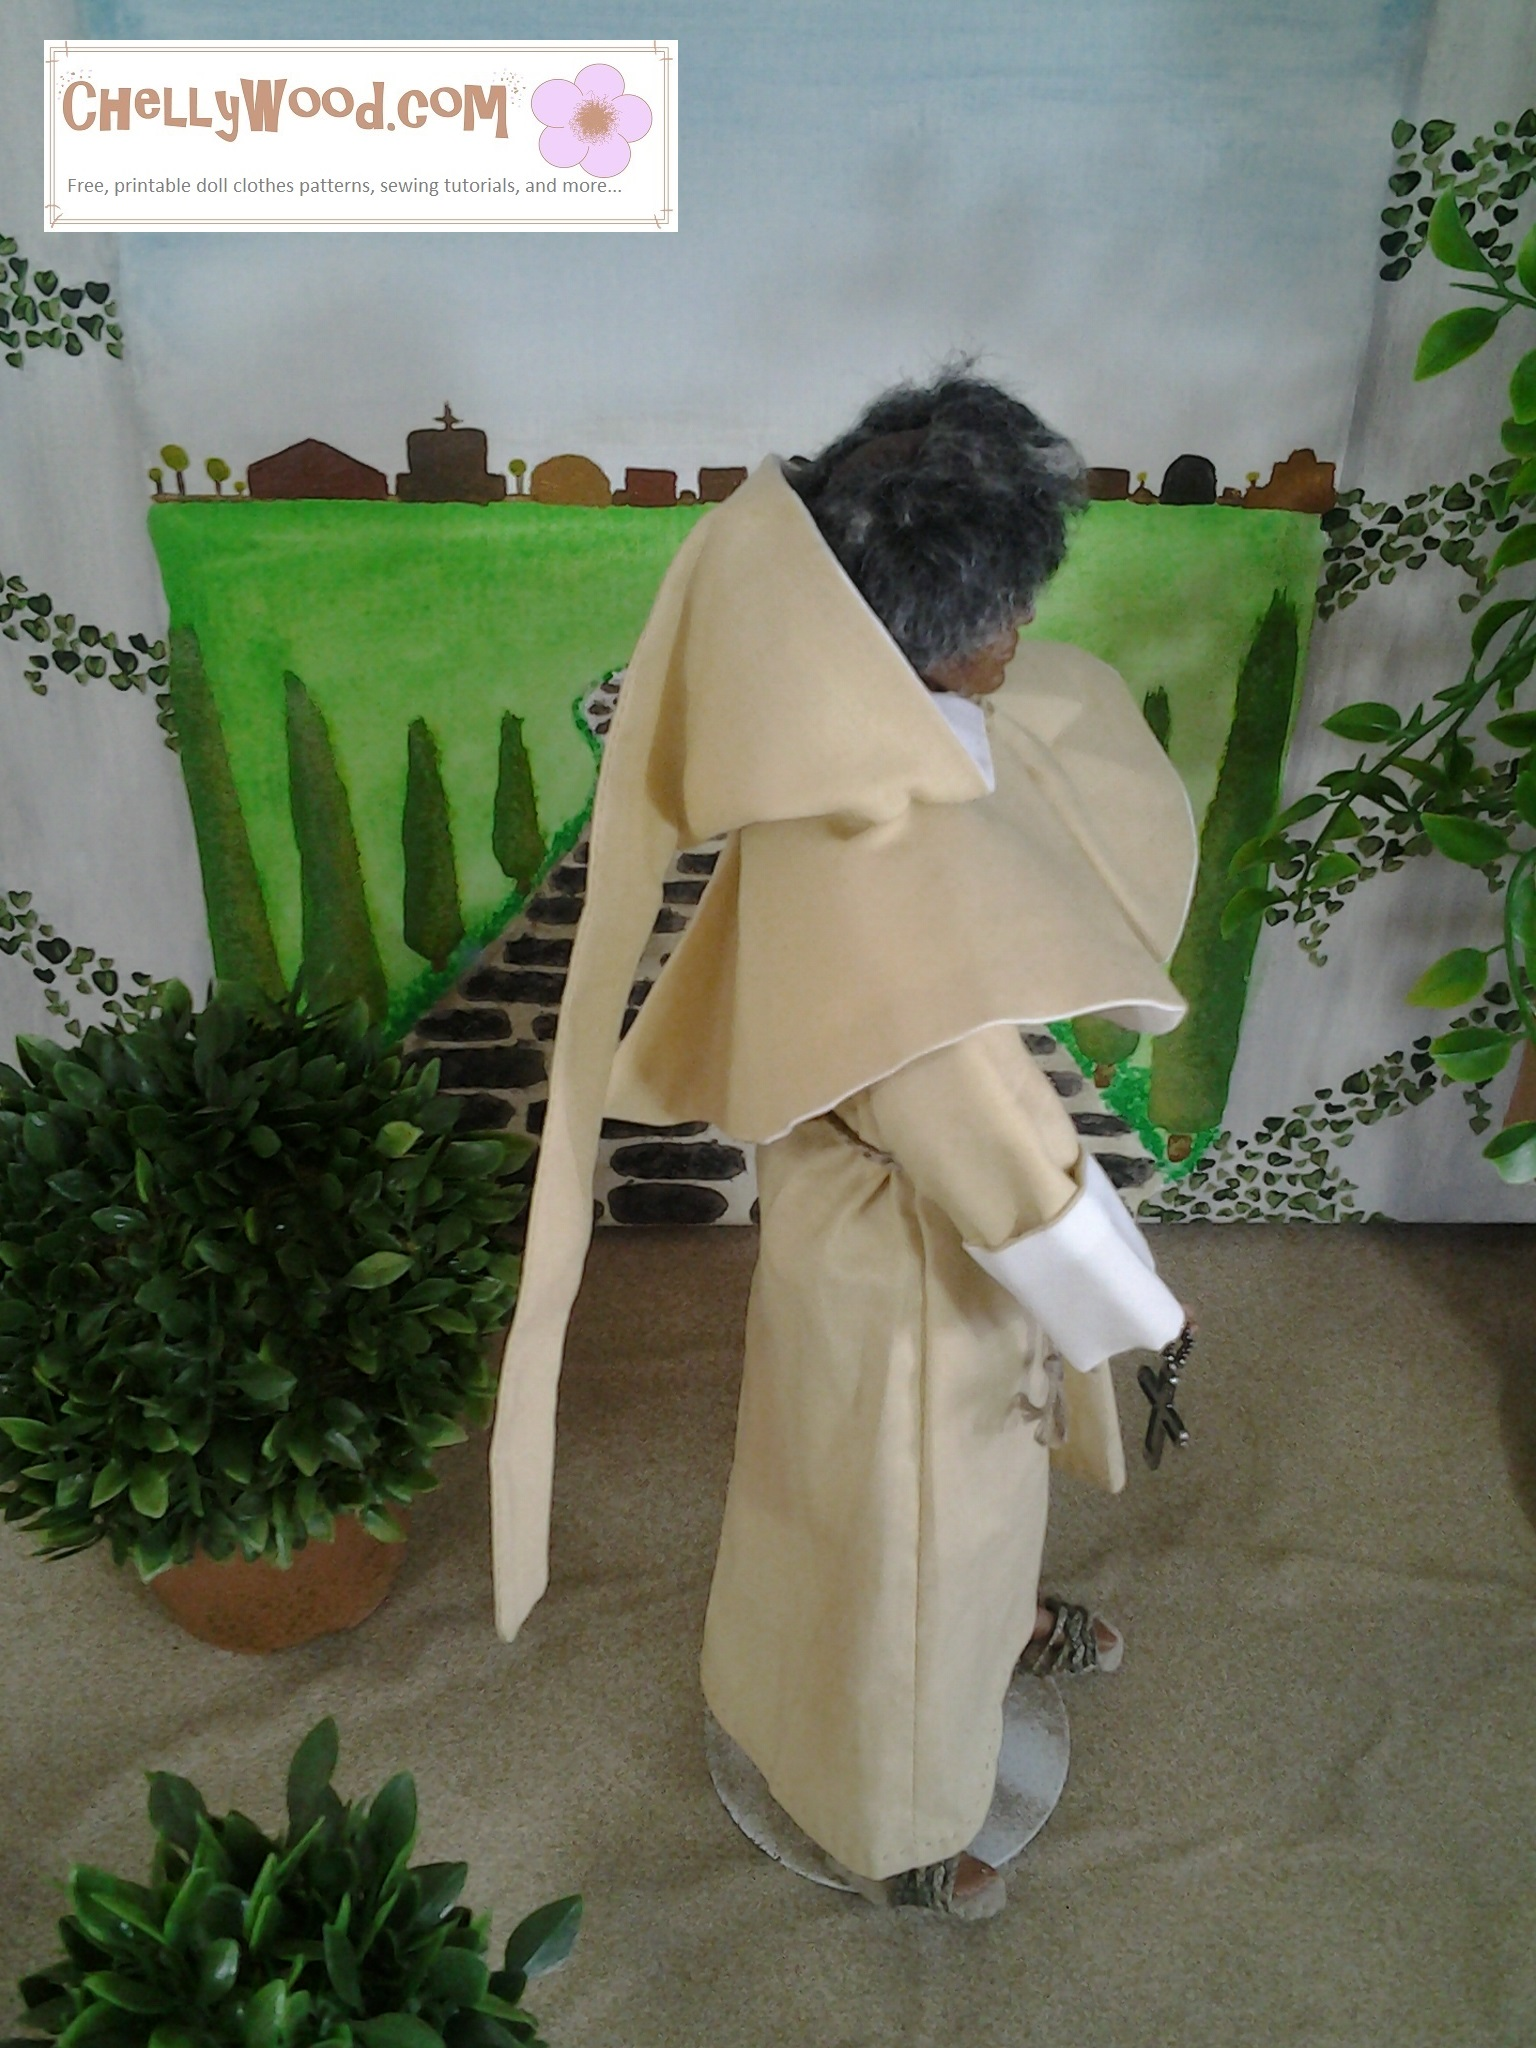 """Image shows Texas A and M Ken doll dressed as Friar Laurence in Shakespeare's Romeo and Juliet. He wears a hooded robe and sandals. He stands in an Italian garden with a cobble-stone path behind him and a small topiary nearby. Caption reads """"Chelly Wood dot come for free, printable sewing patterns and tutorials."""""""